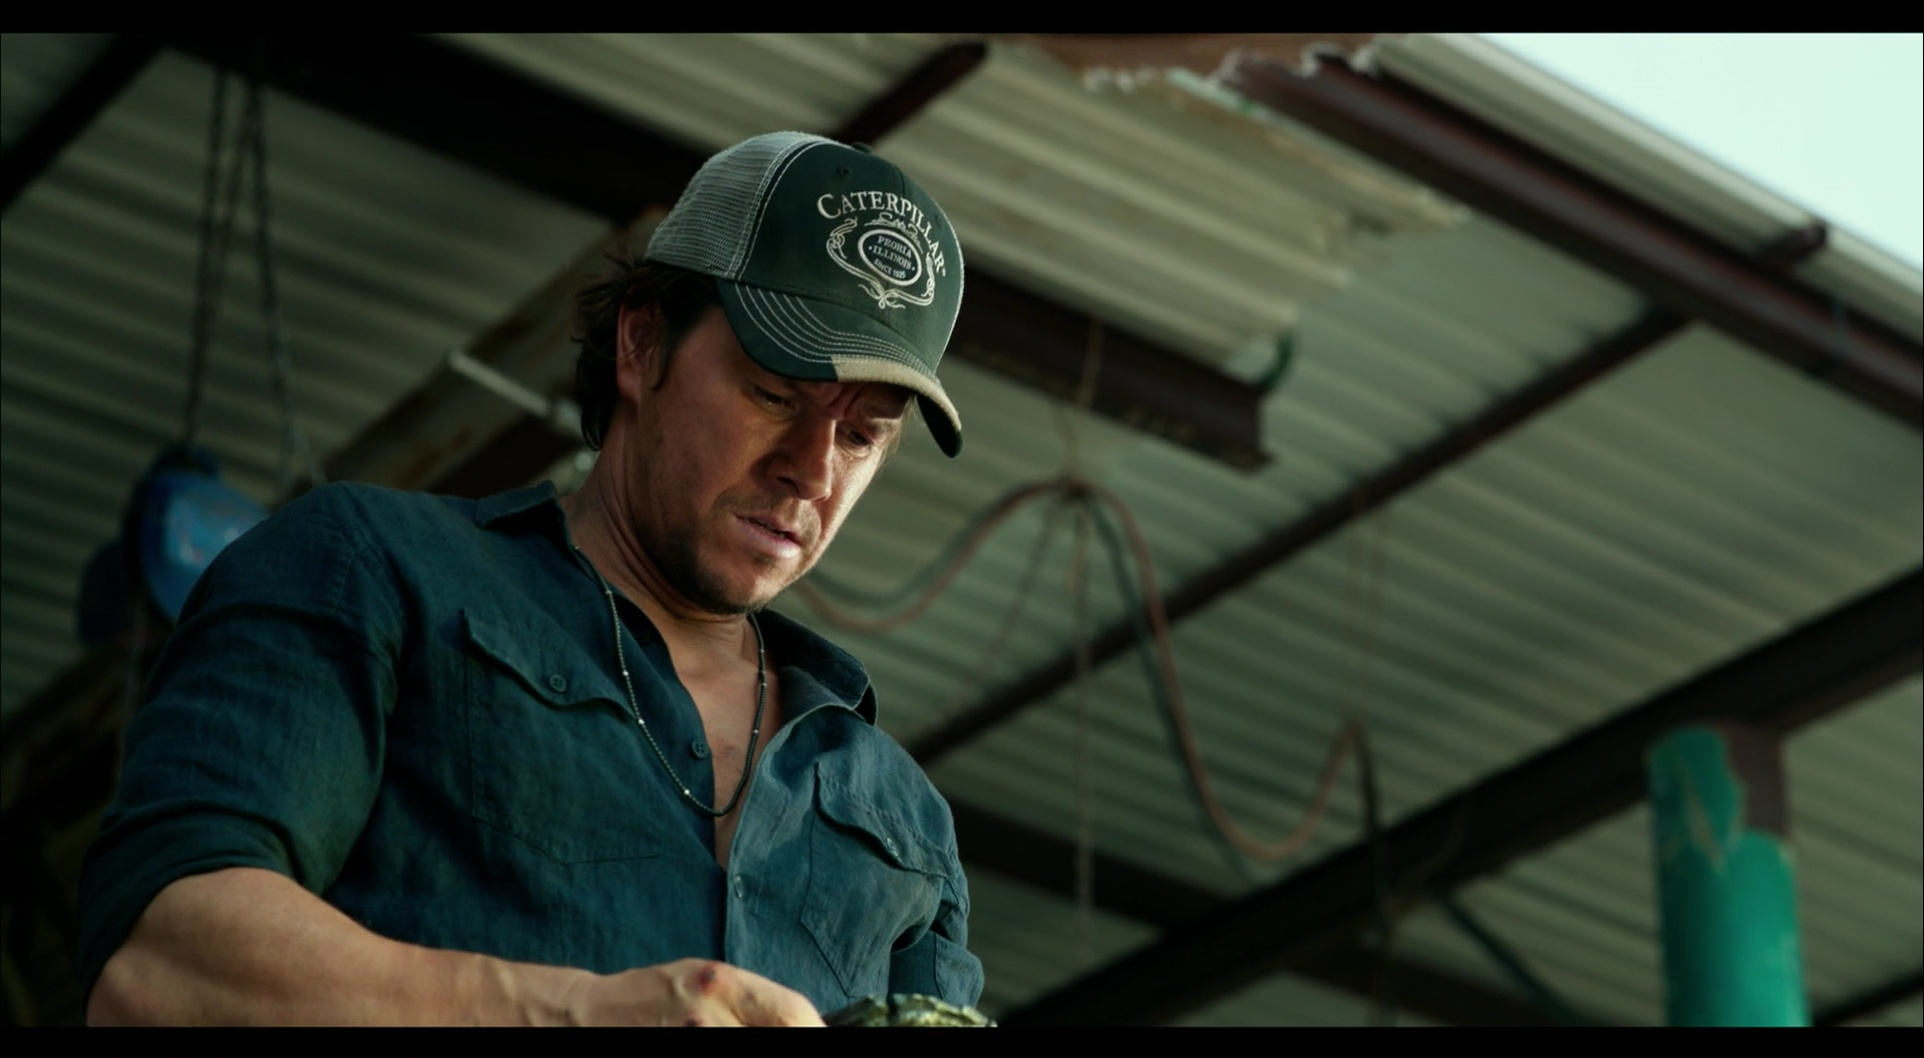 Caterpillar Cap Worn by Mark Wahlberg in Transformers 5: The Last Knight (2017) Movie